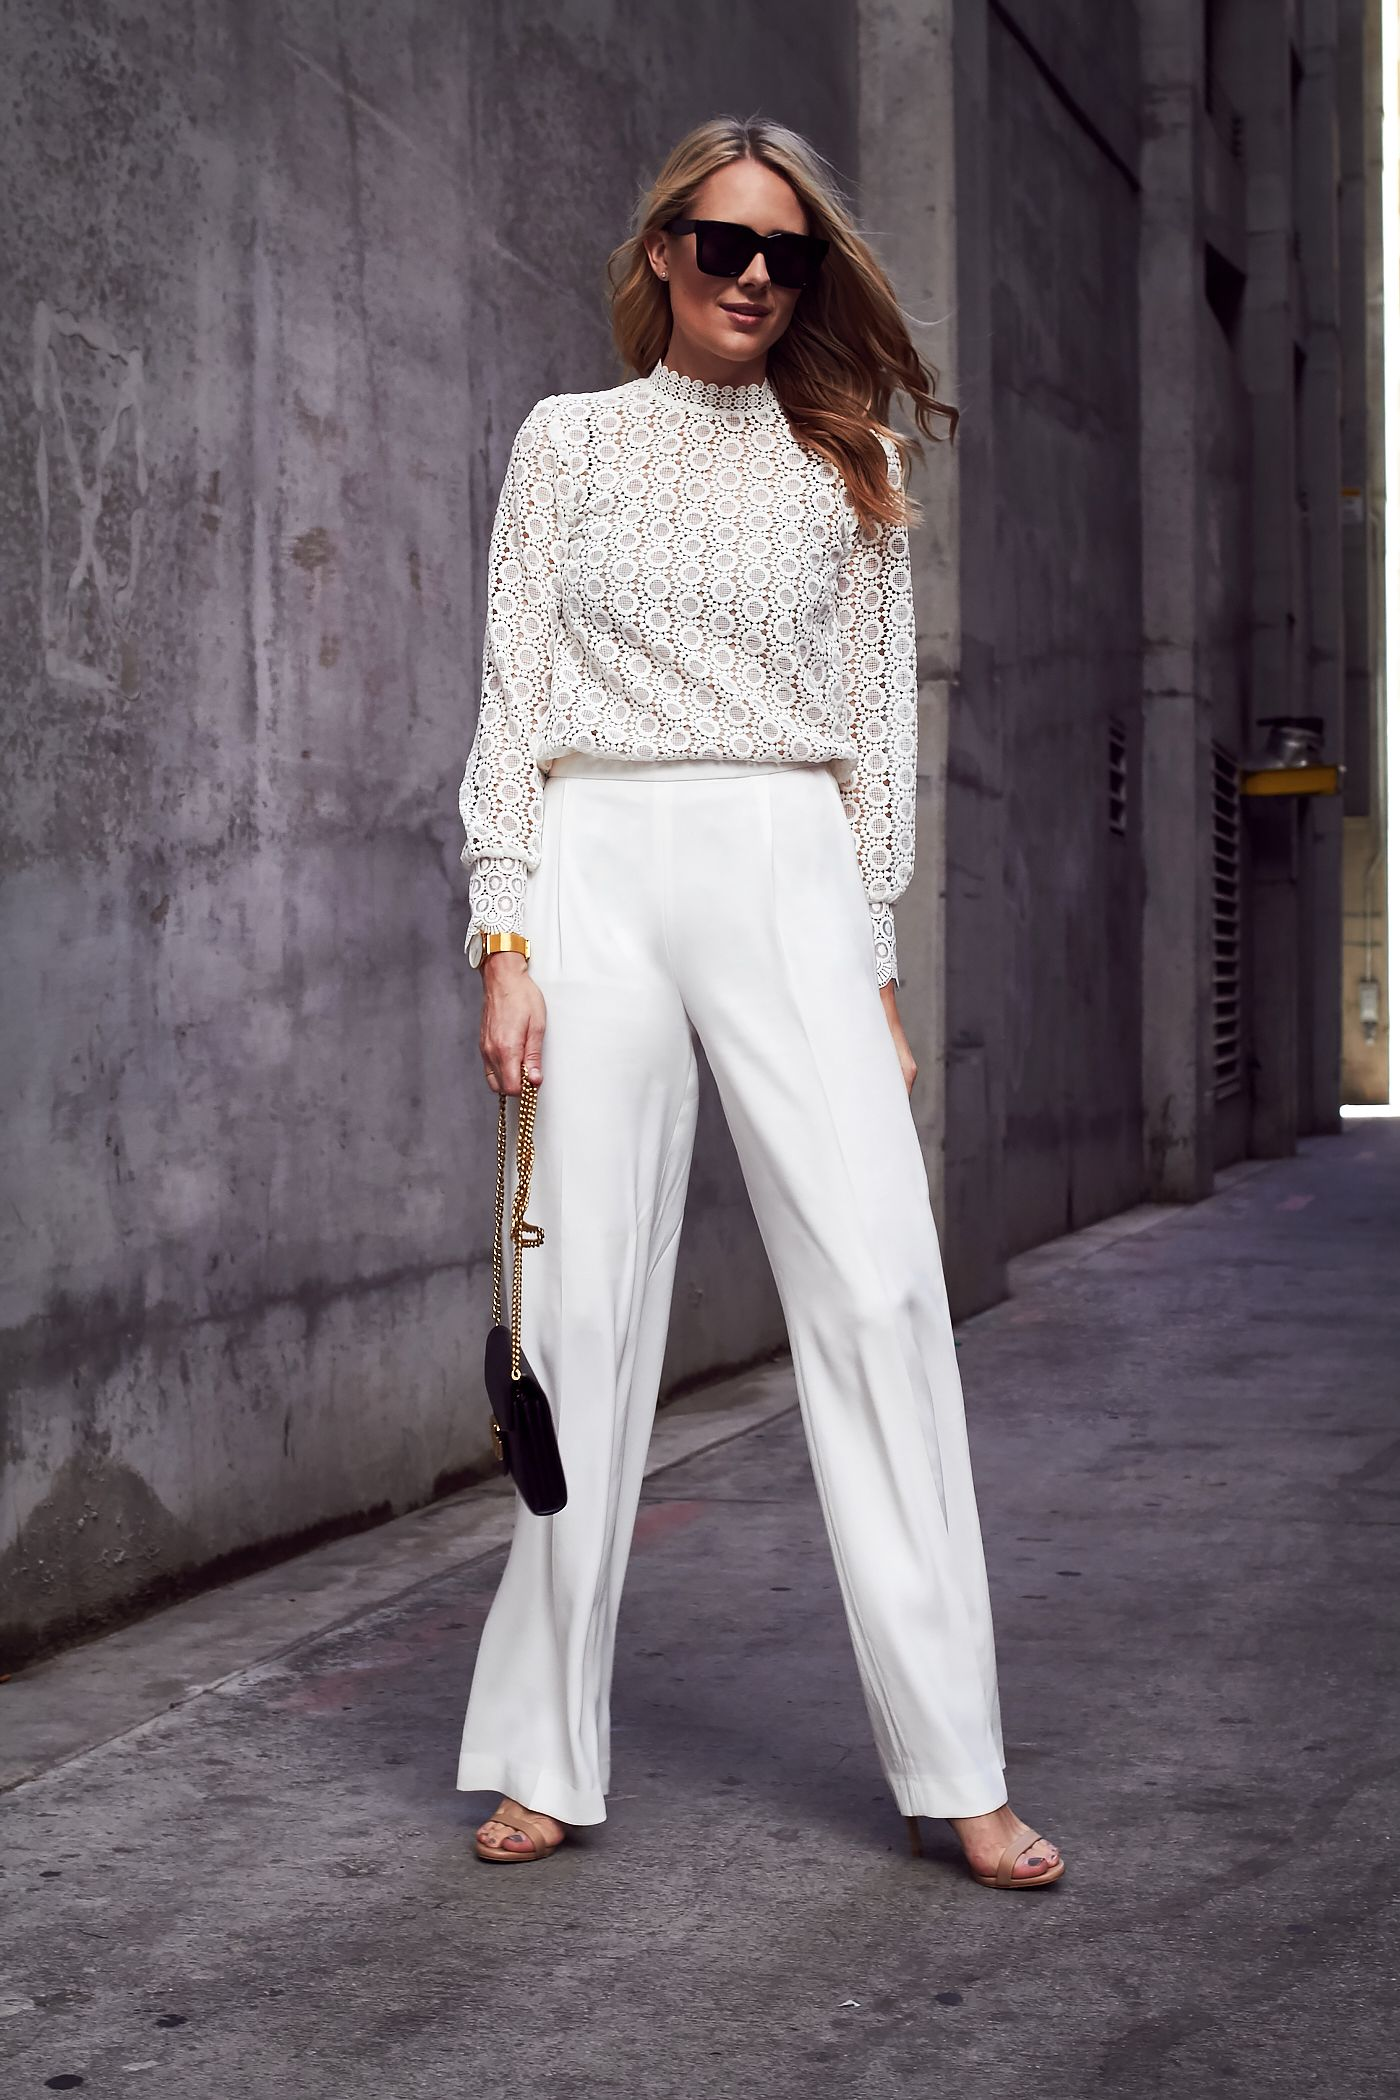 Looks - Pants leg wide in style for fall-winter video